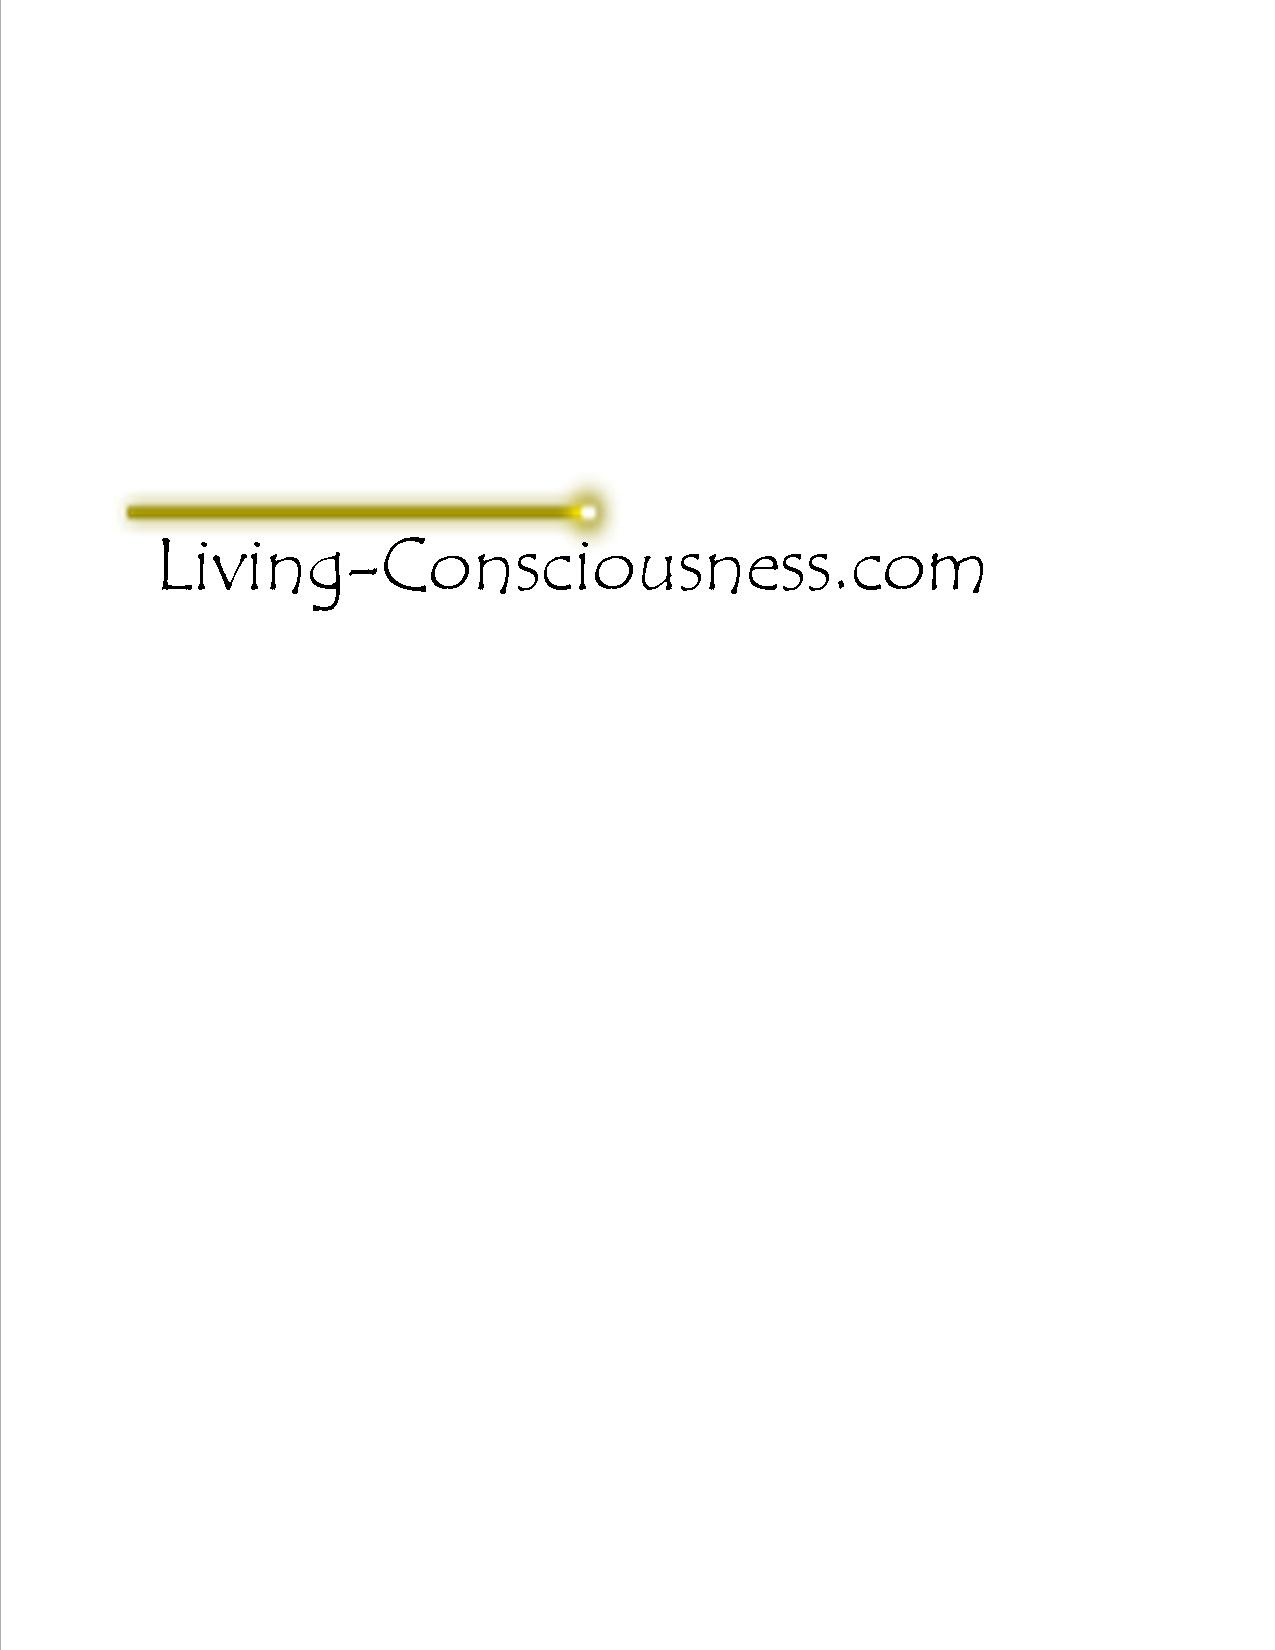 Living-Consciousness (web) Talk Radio